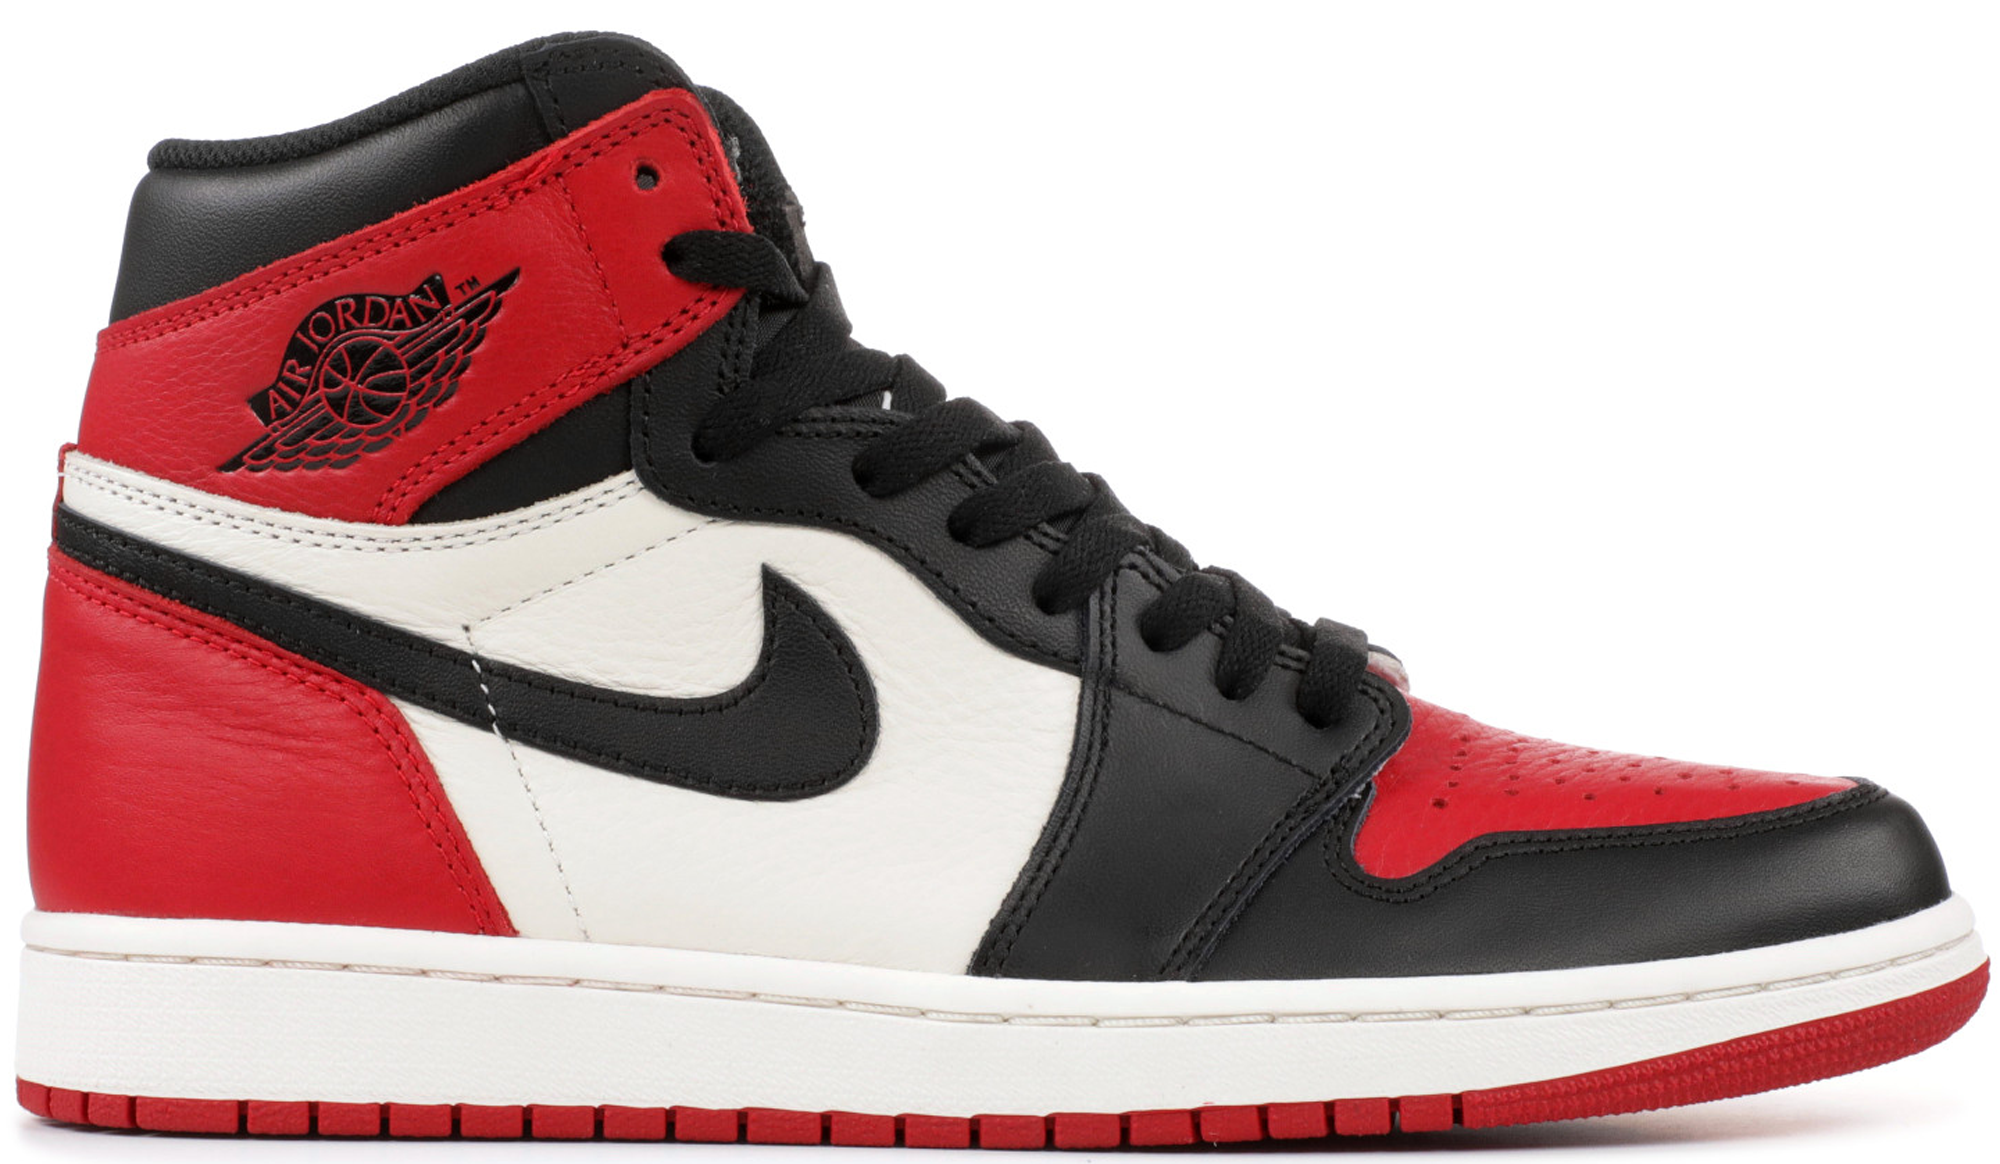 air jordan i retro high bred toe price